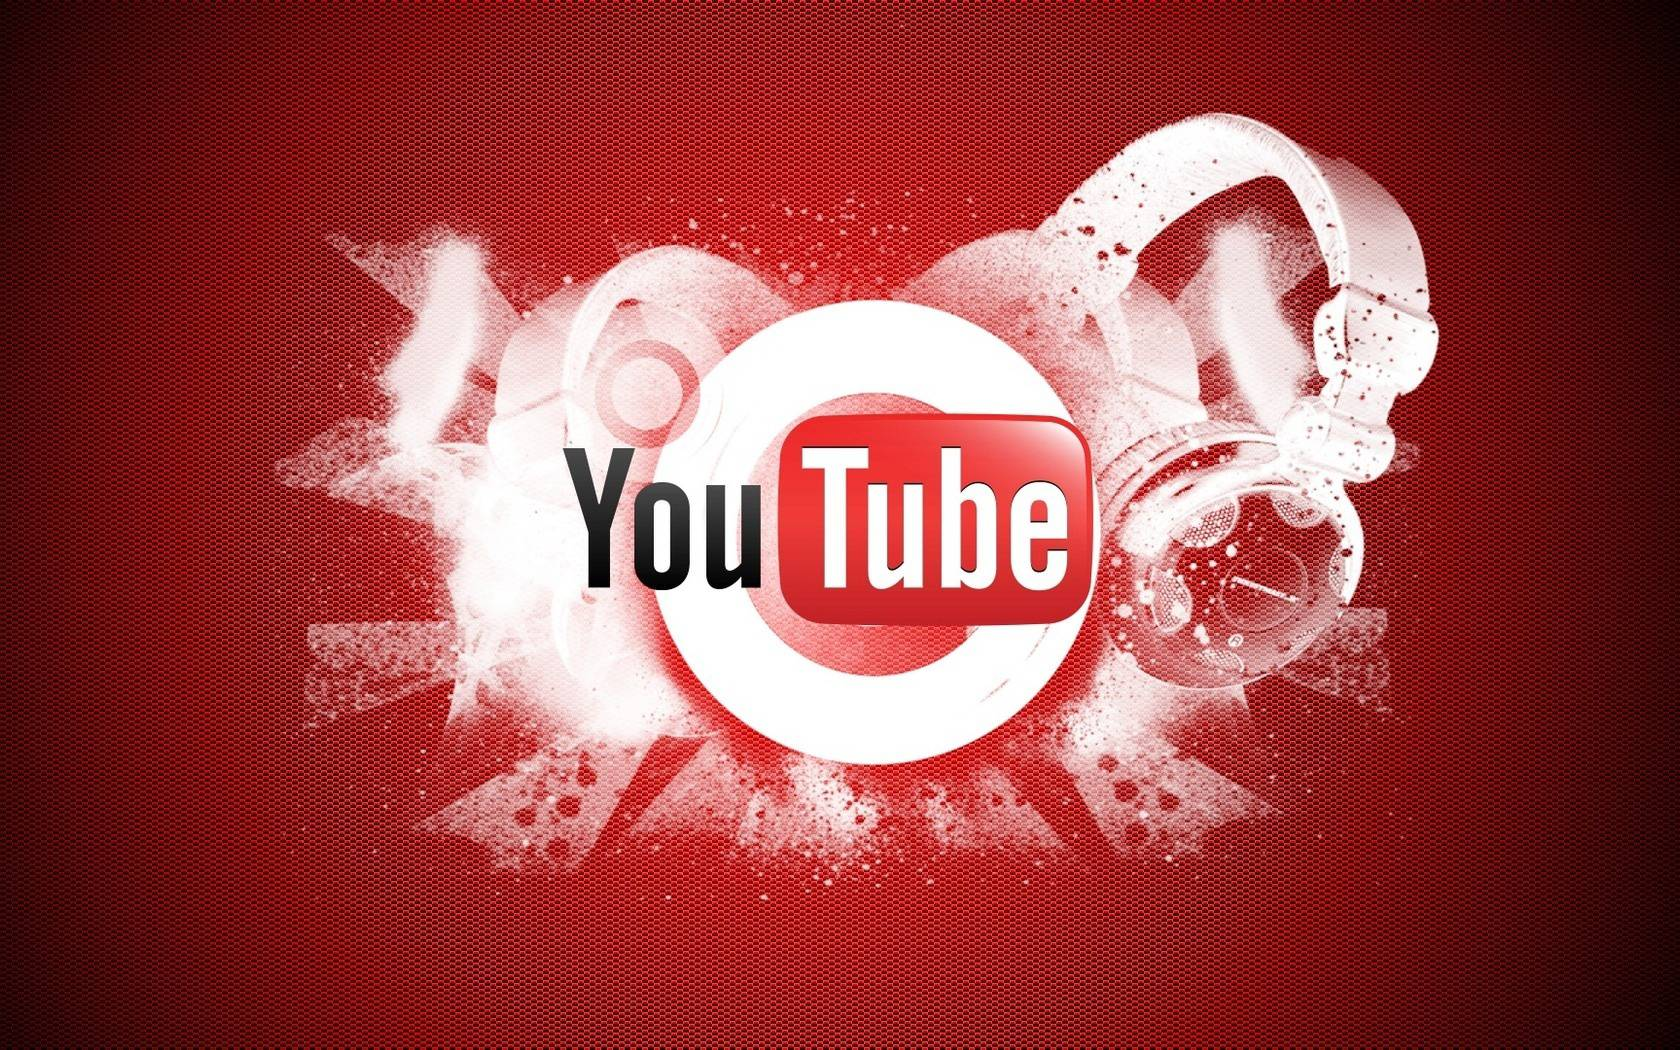 Cool Youtube Wallpaper2 Youtube desktop wallpaper 1680x1050